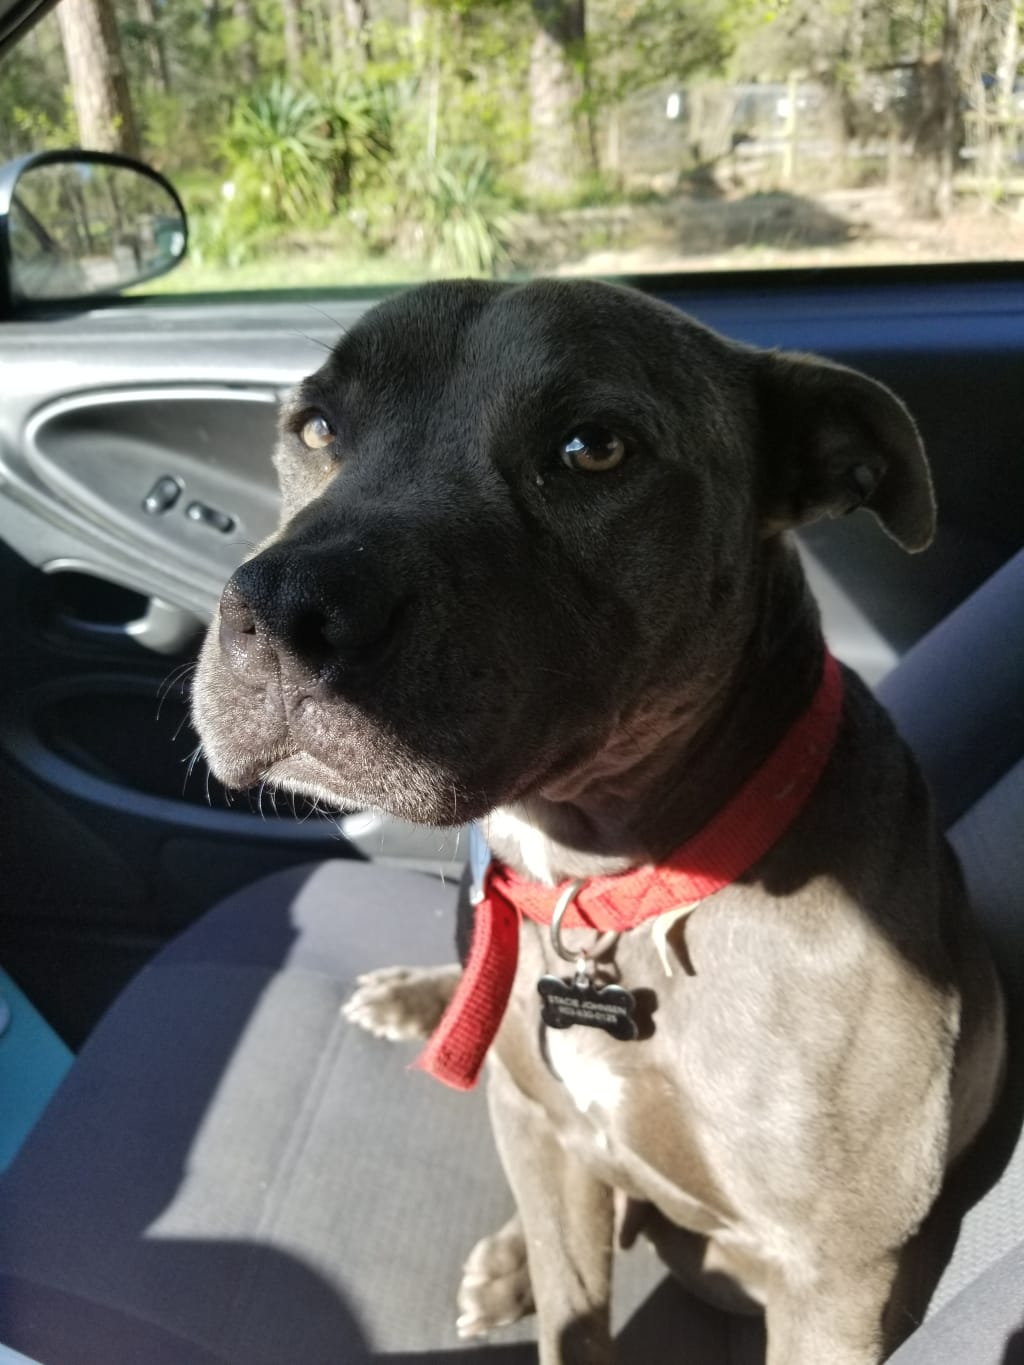 The Love of a Rescue Pitt Bull